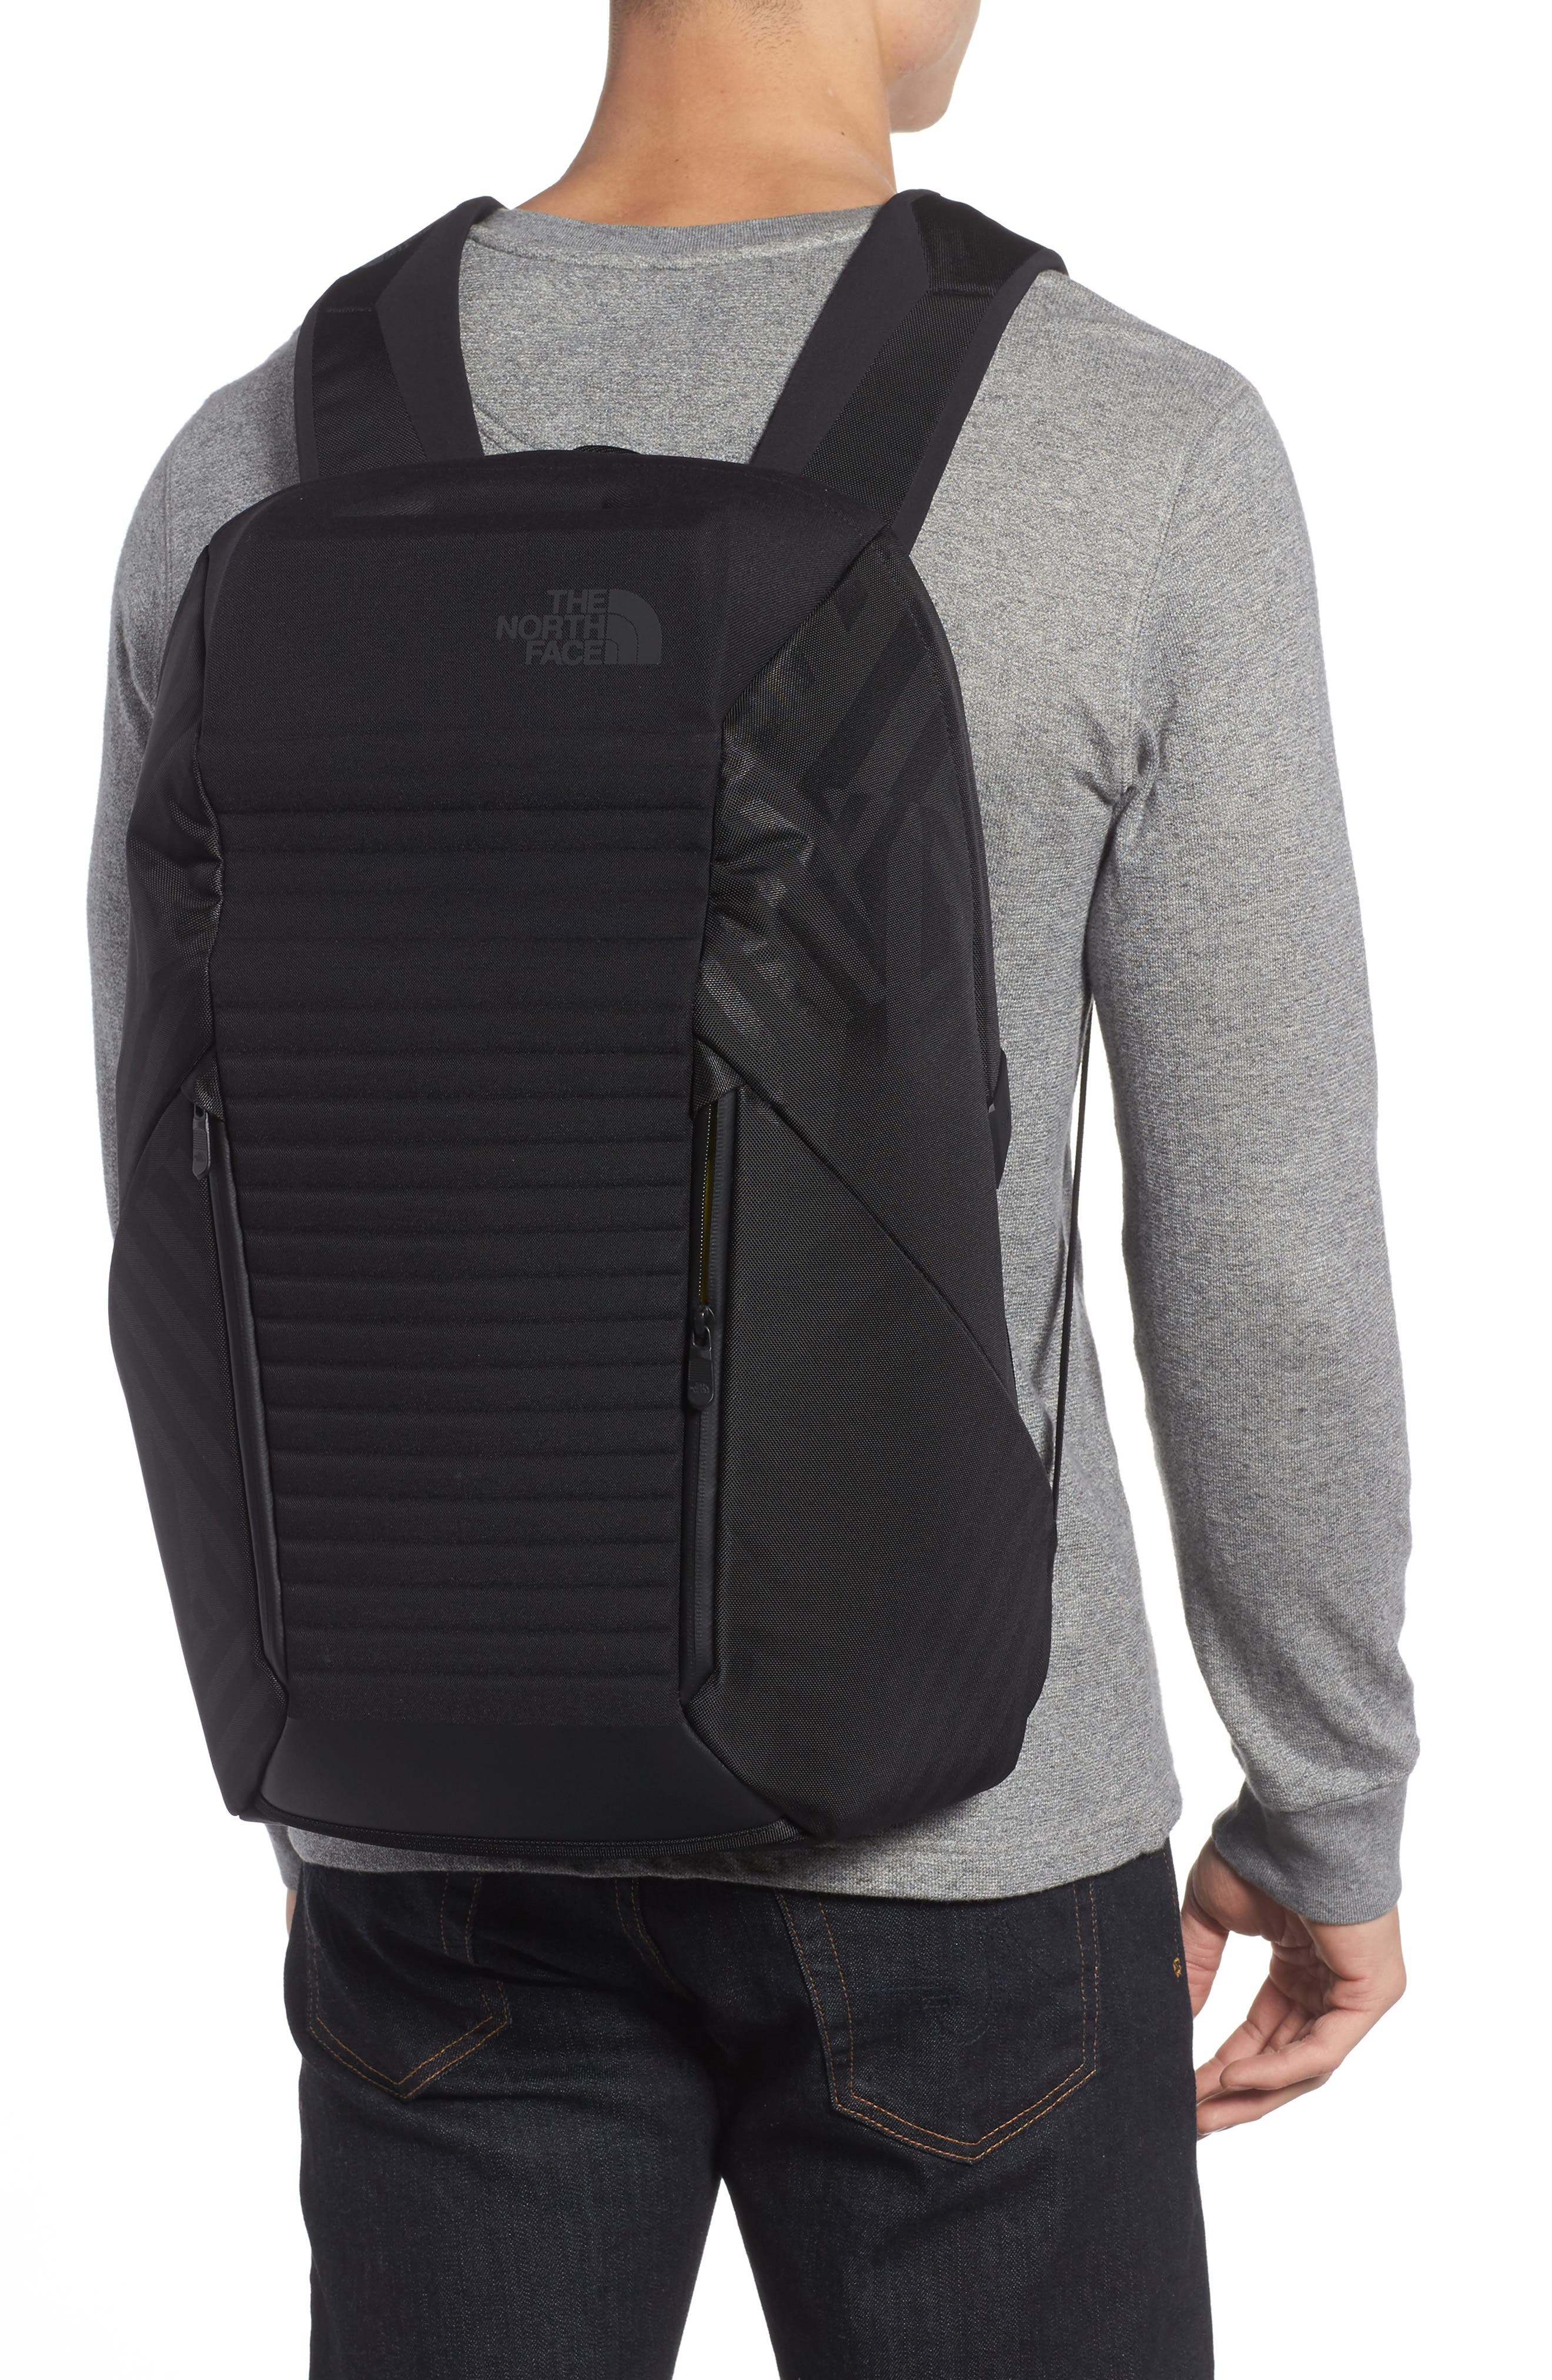 Access Backpack,                             Alternate thumbnail 2, color,                             002